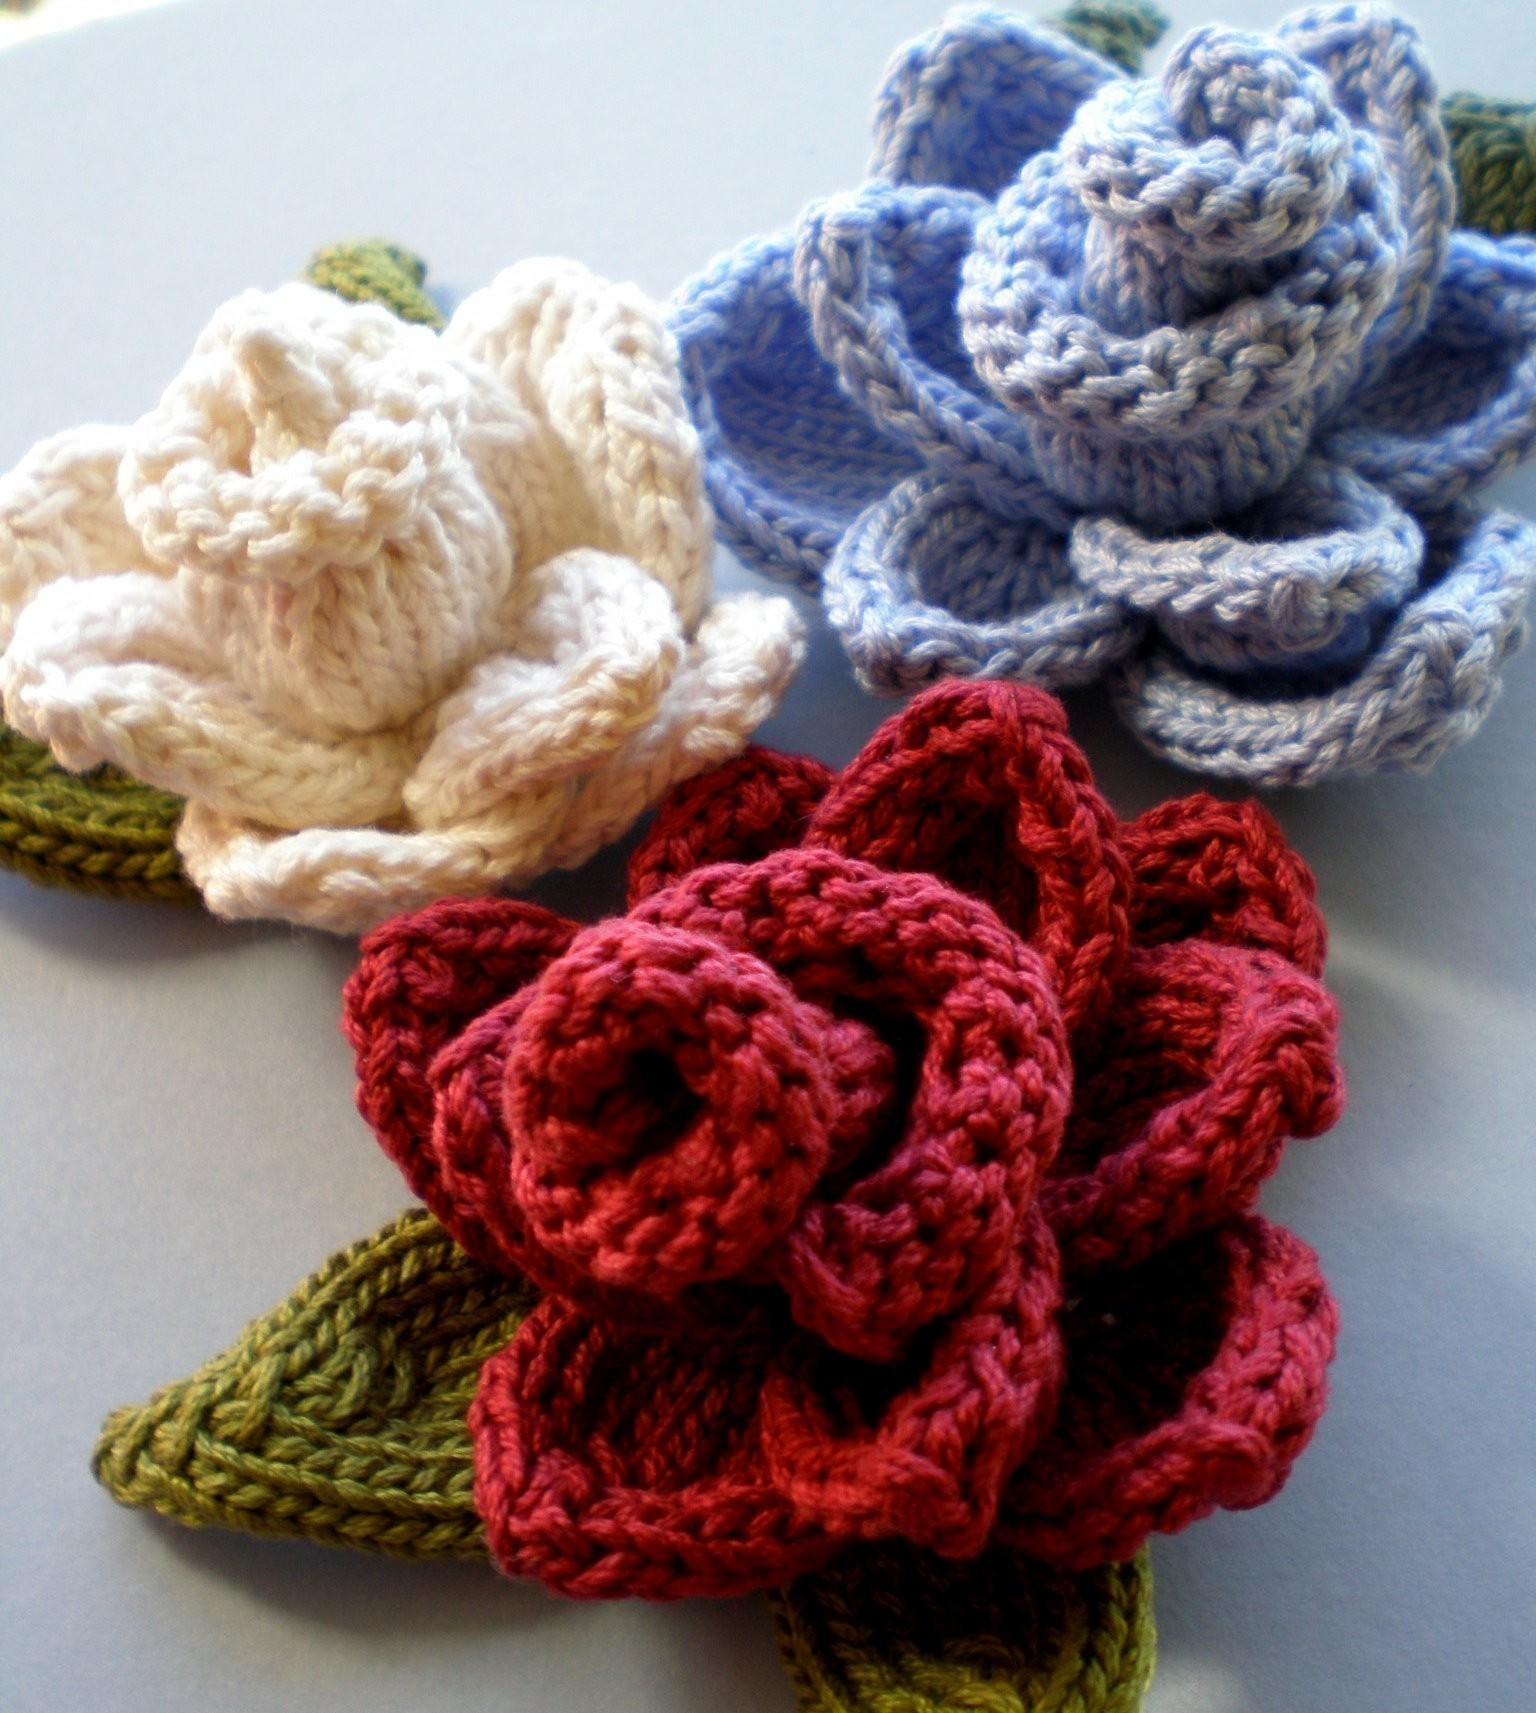 Flower Knitting Patterns Free : Knit Flower Pattern A Knitting Blog